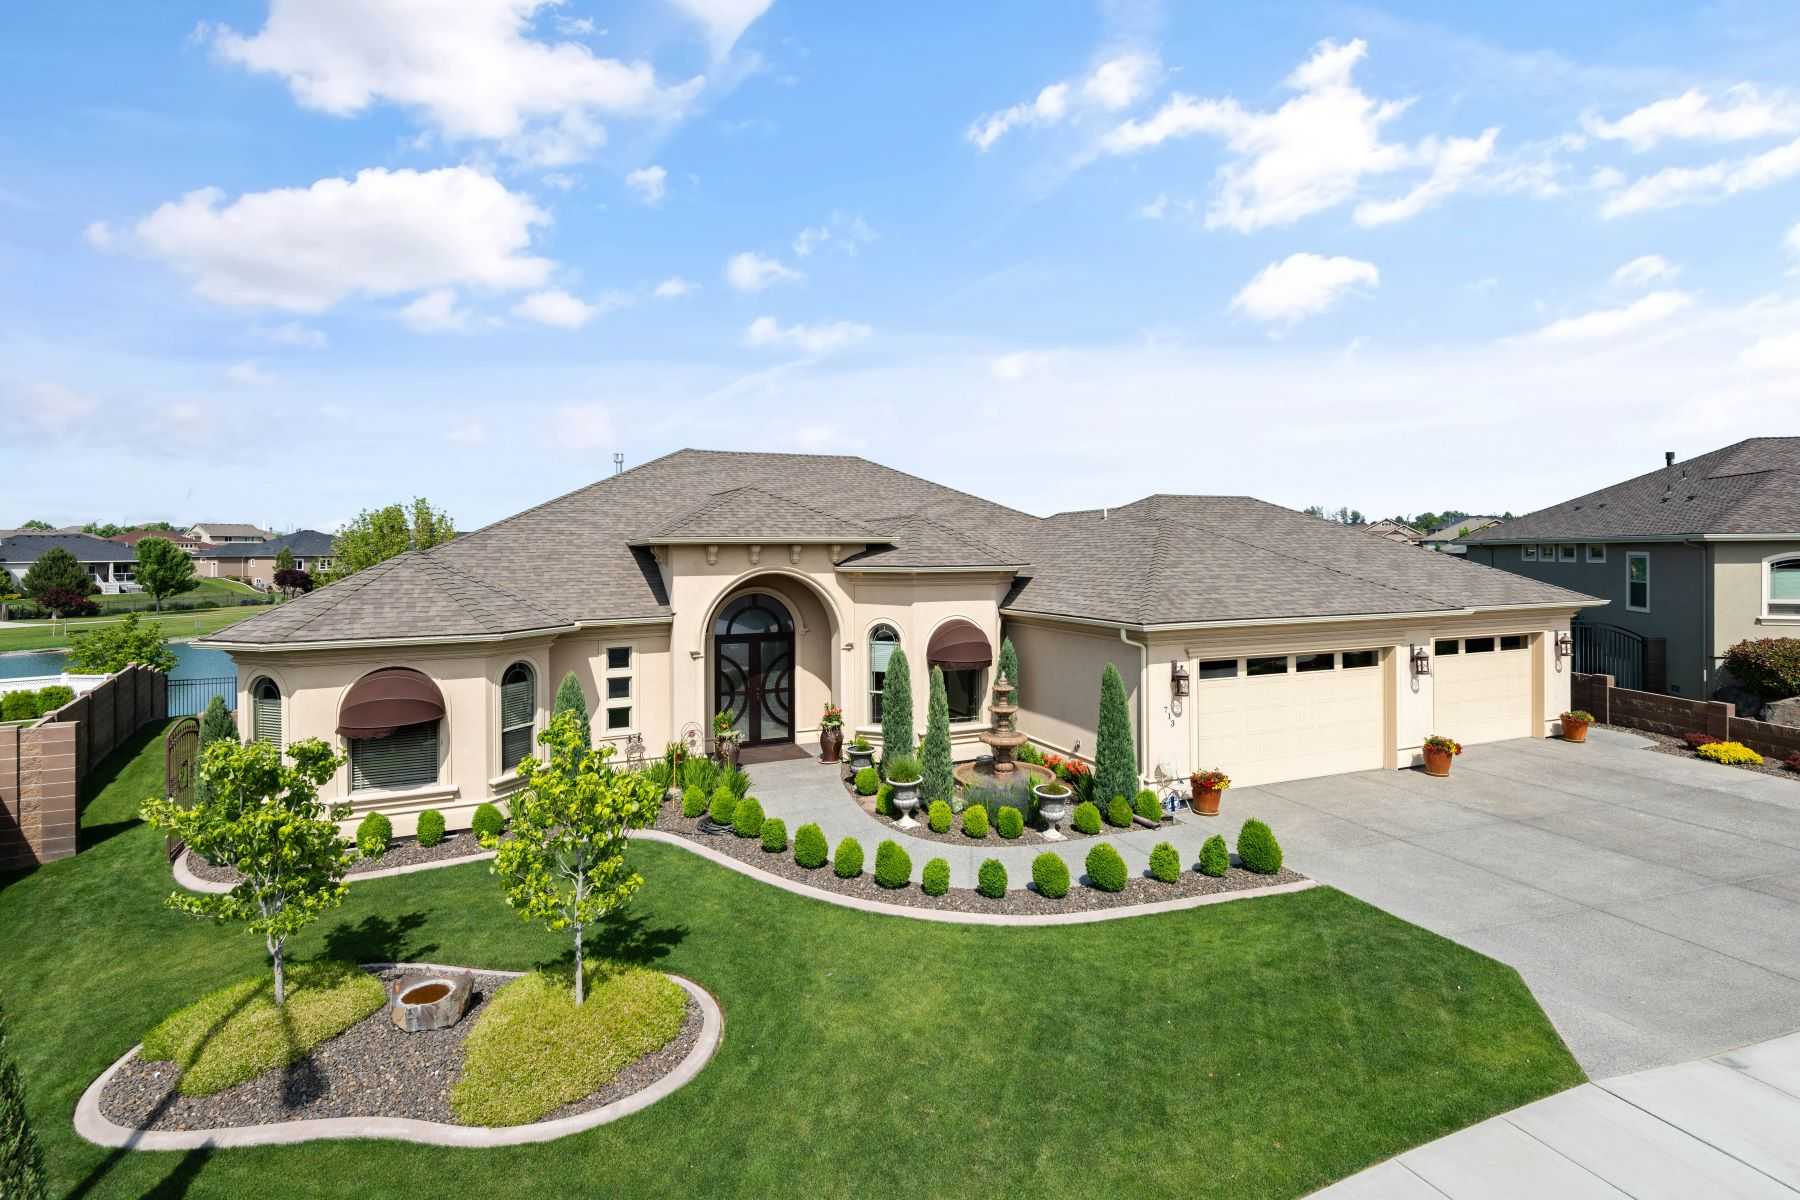 Single Family Homes for Sale at Water Front Luxury 713 S Idaho Pl Kennewick, Washington 99338 United States